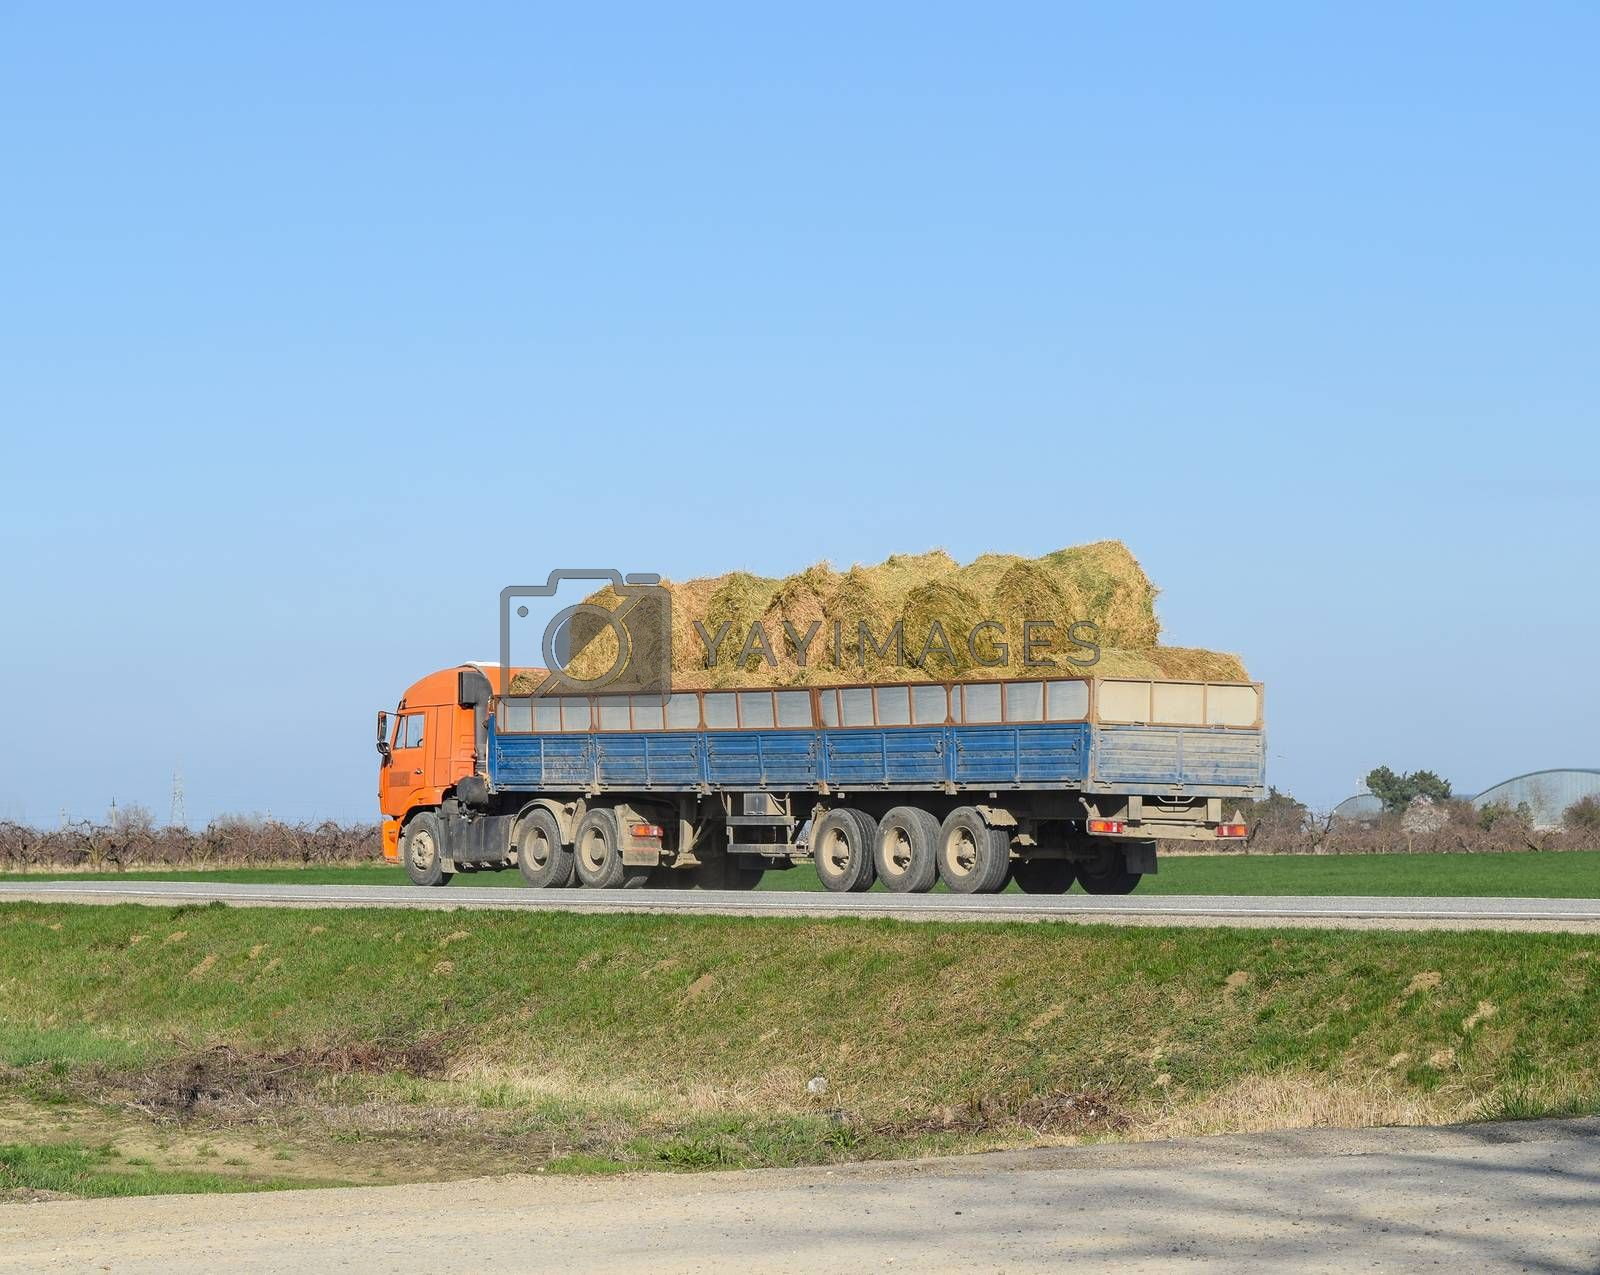 Truck carrying hay in his body. Making hay for the winter